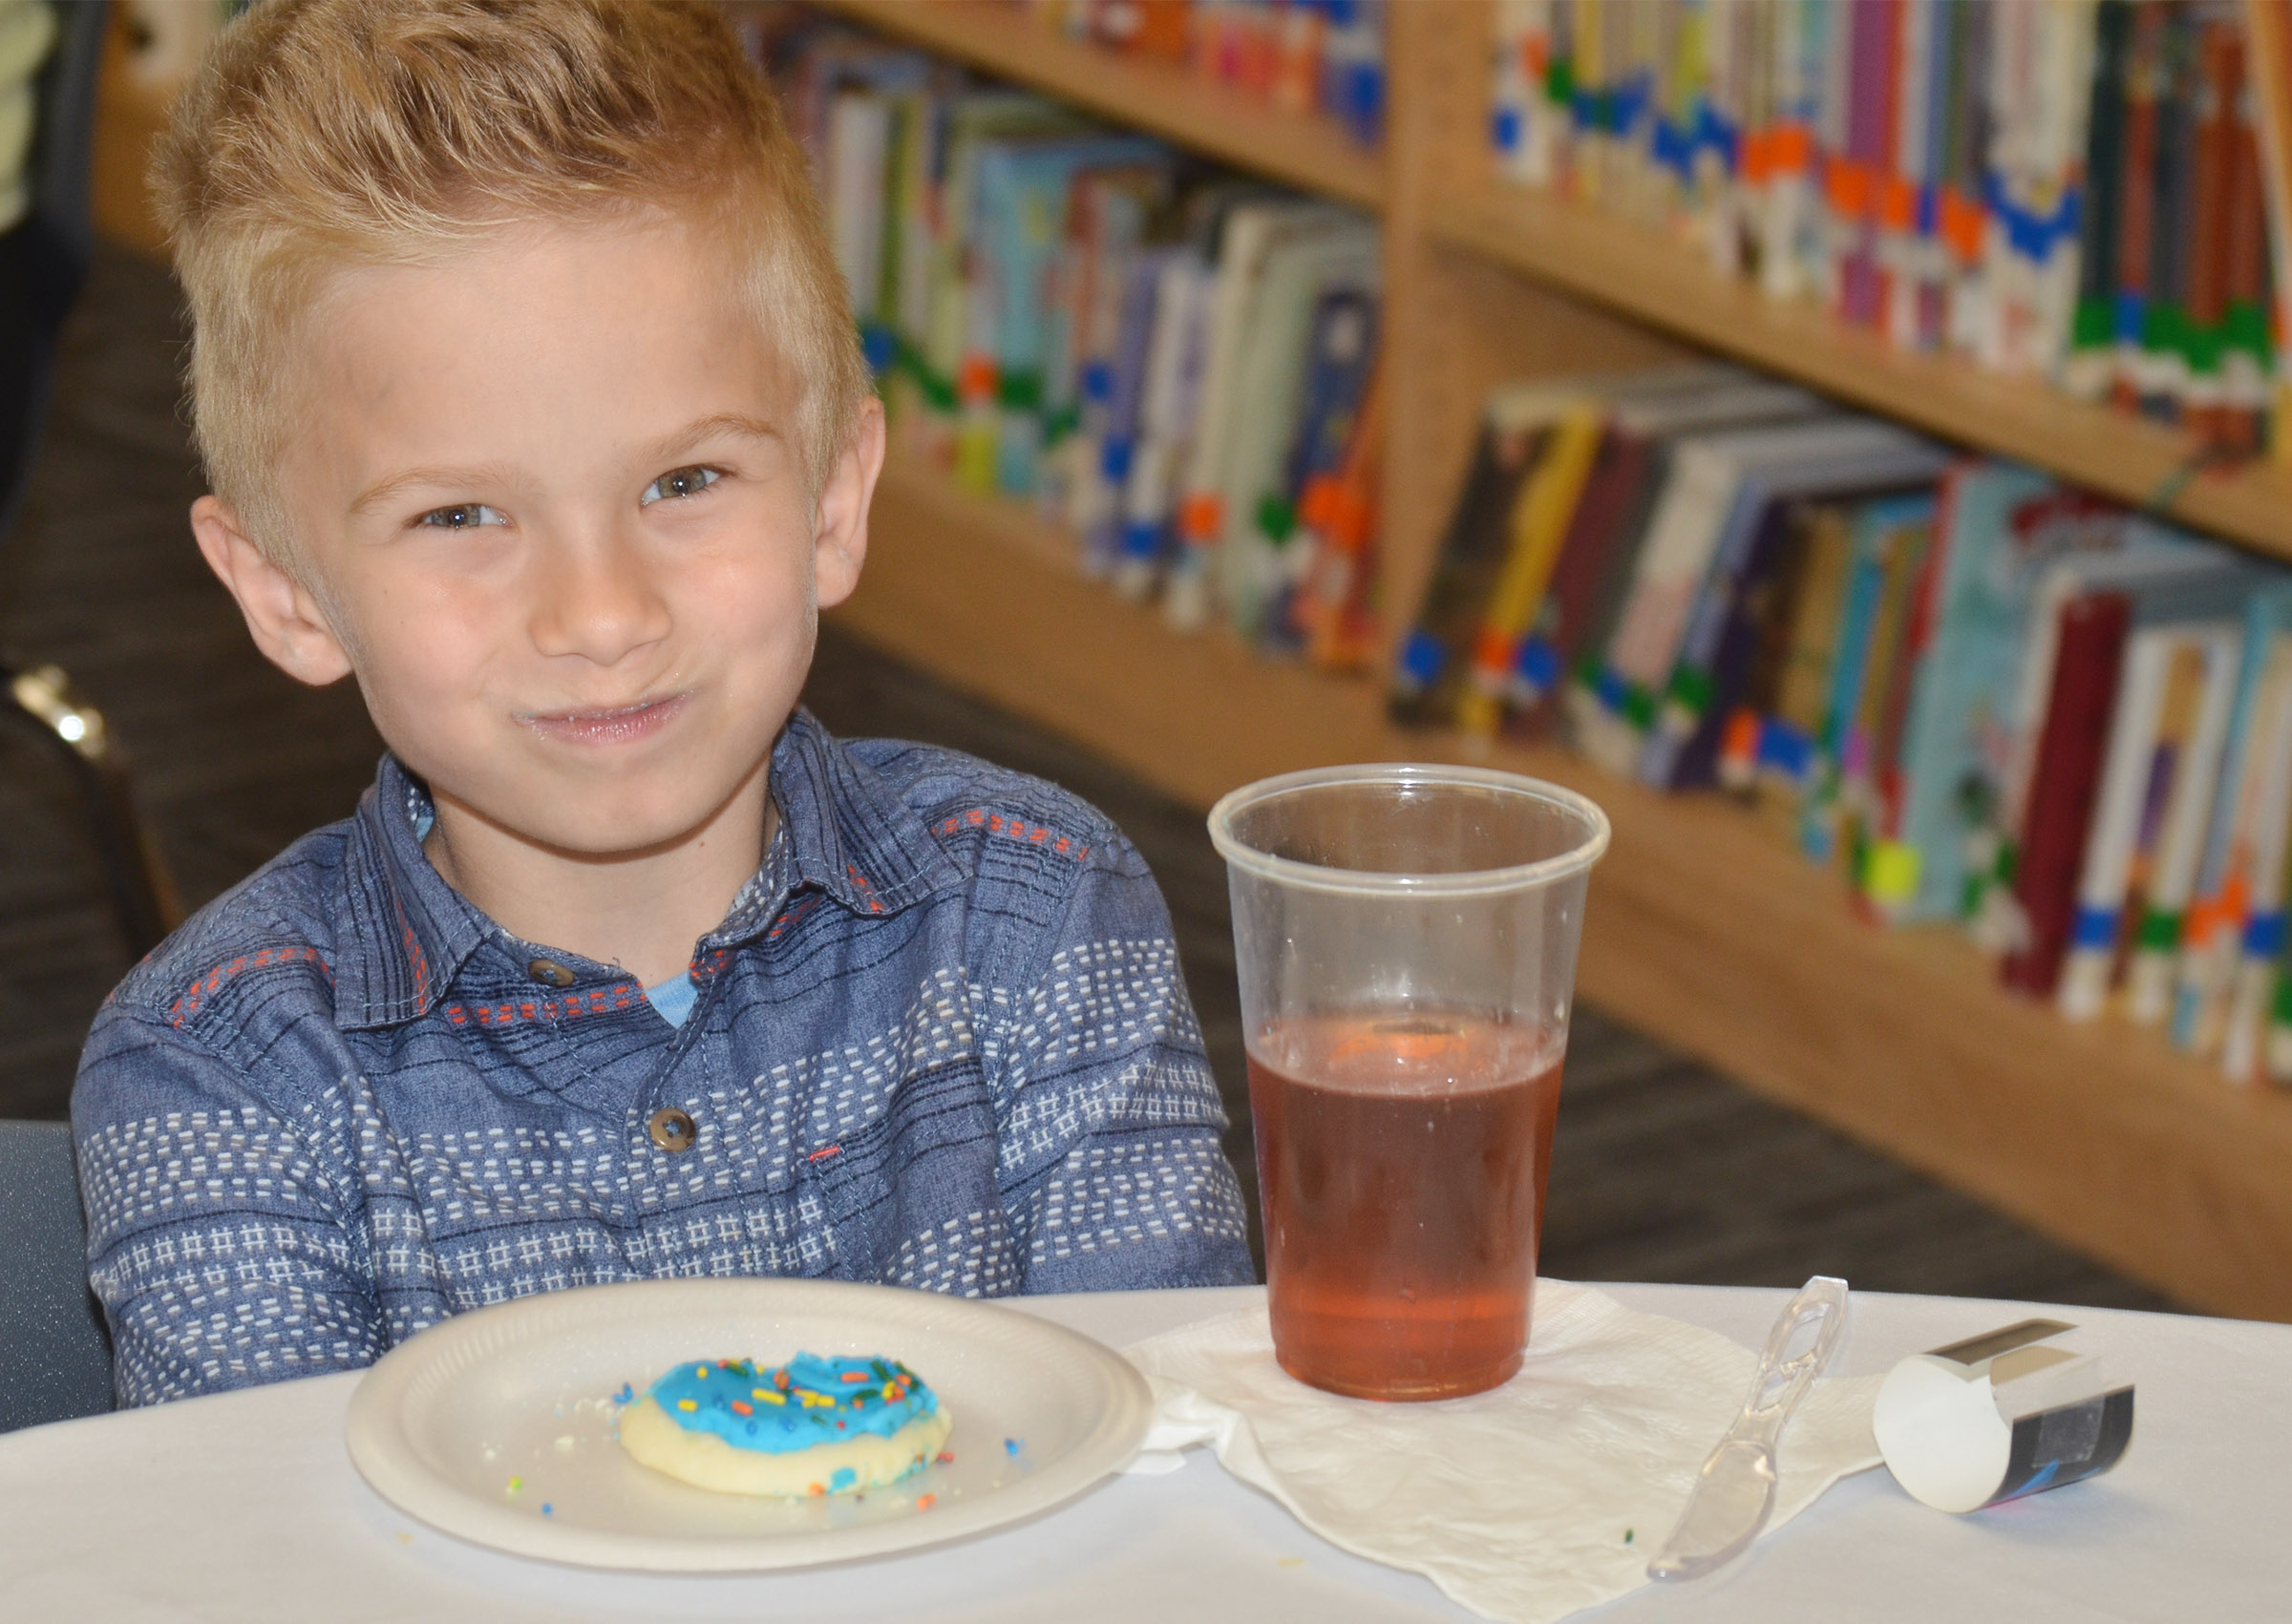 CES first-grader Parker Hamilton smiles as he enjoys his cookie for dessert.